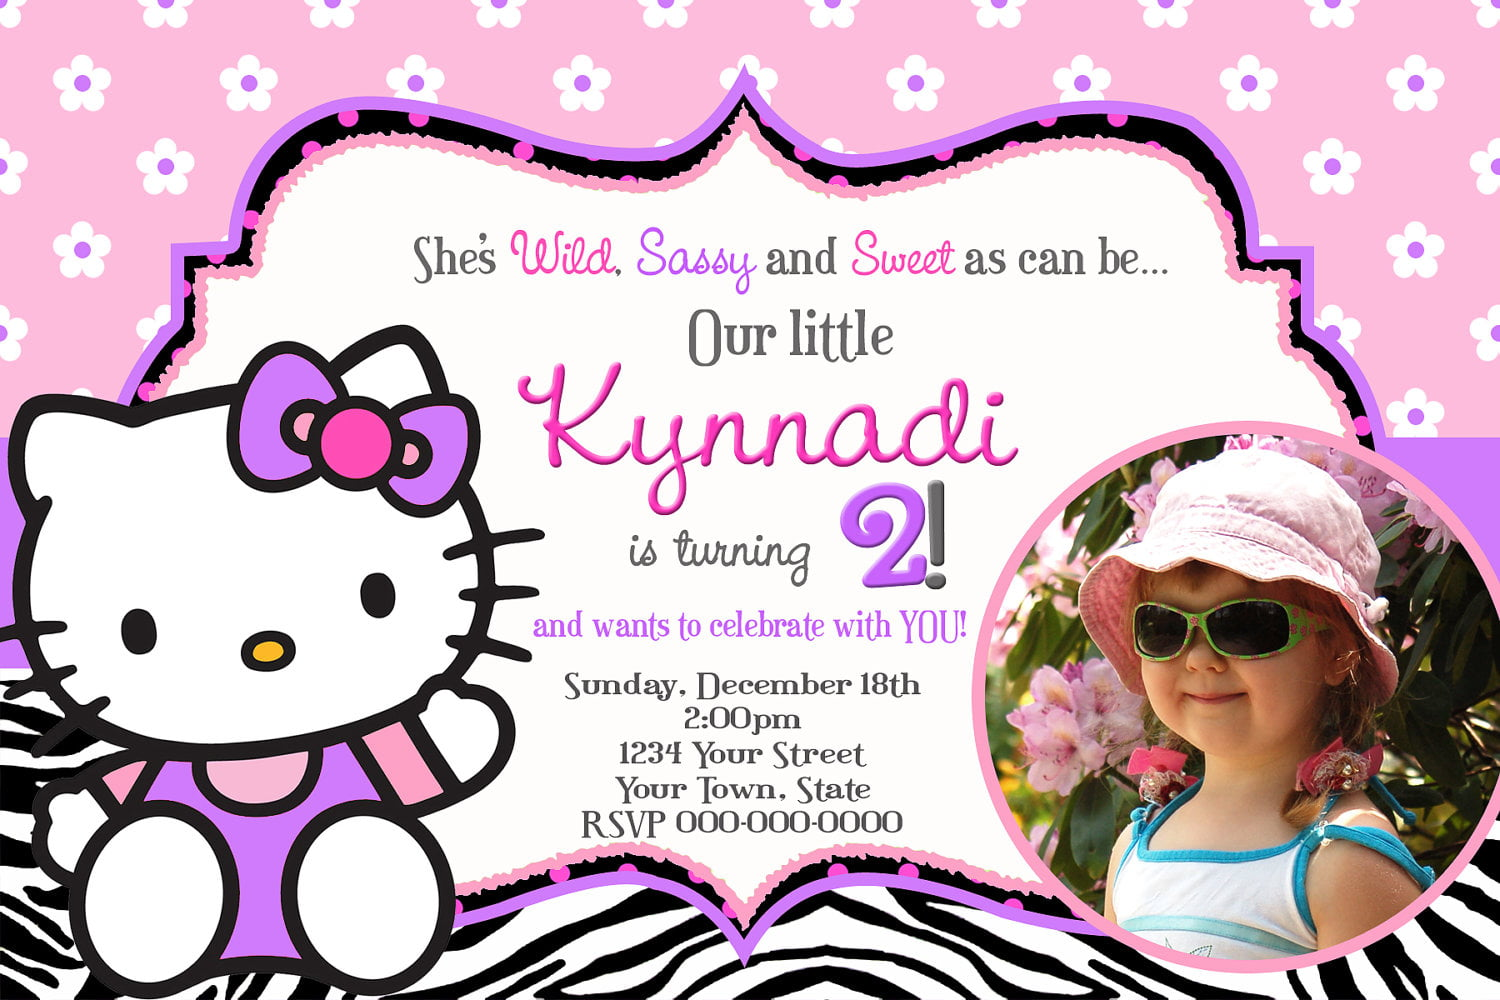 personalized hello kitty birthday invitations drevio invitations personalized hello kitty zebra print birthday invitations